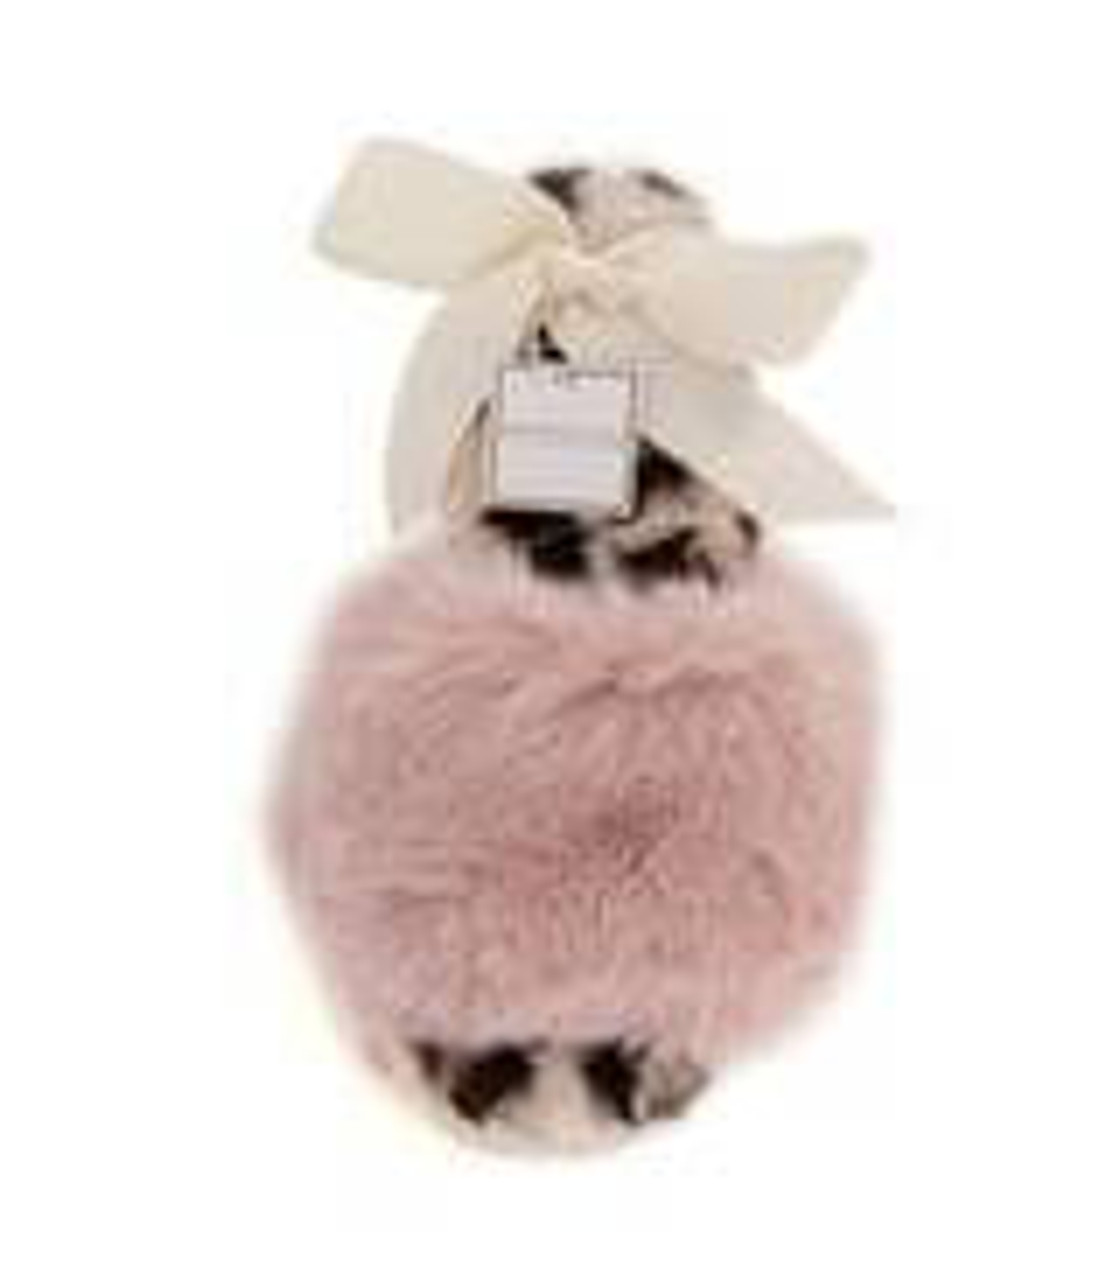 Get glammed up at home with these super comfy vegan slippers. These so-soft slippers feature a faux fur upper with a lightly padded footbed. Fits Size 6 - 10.